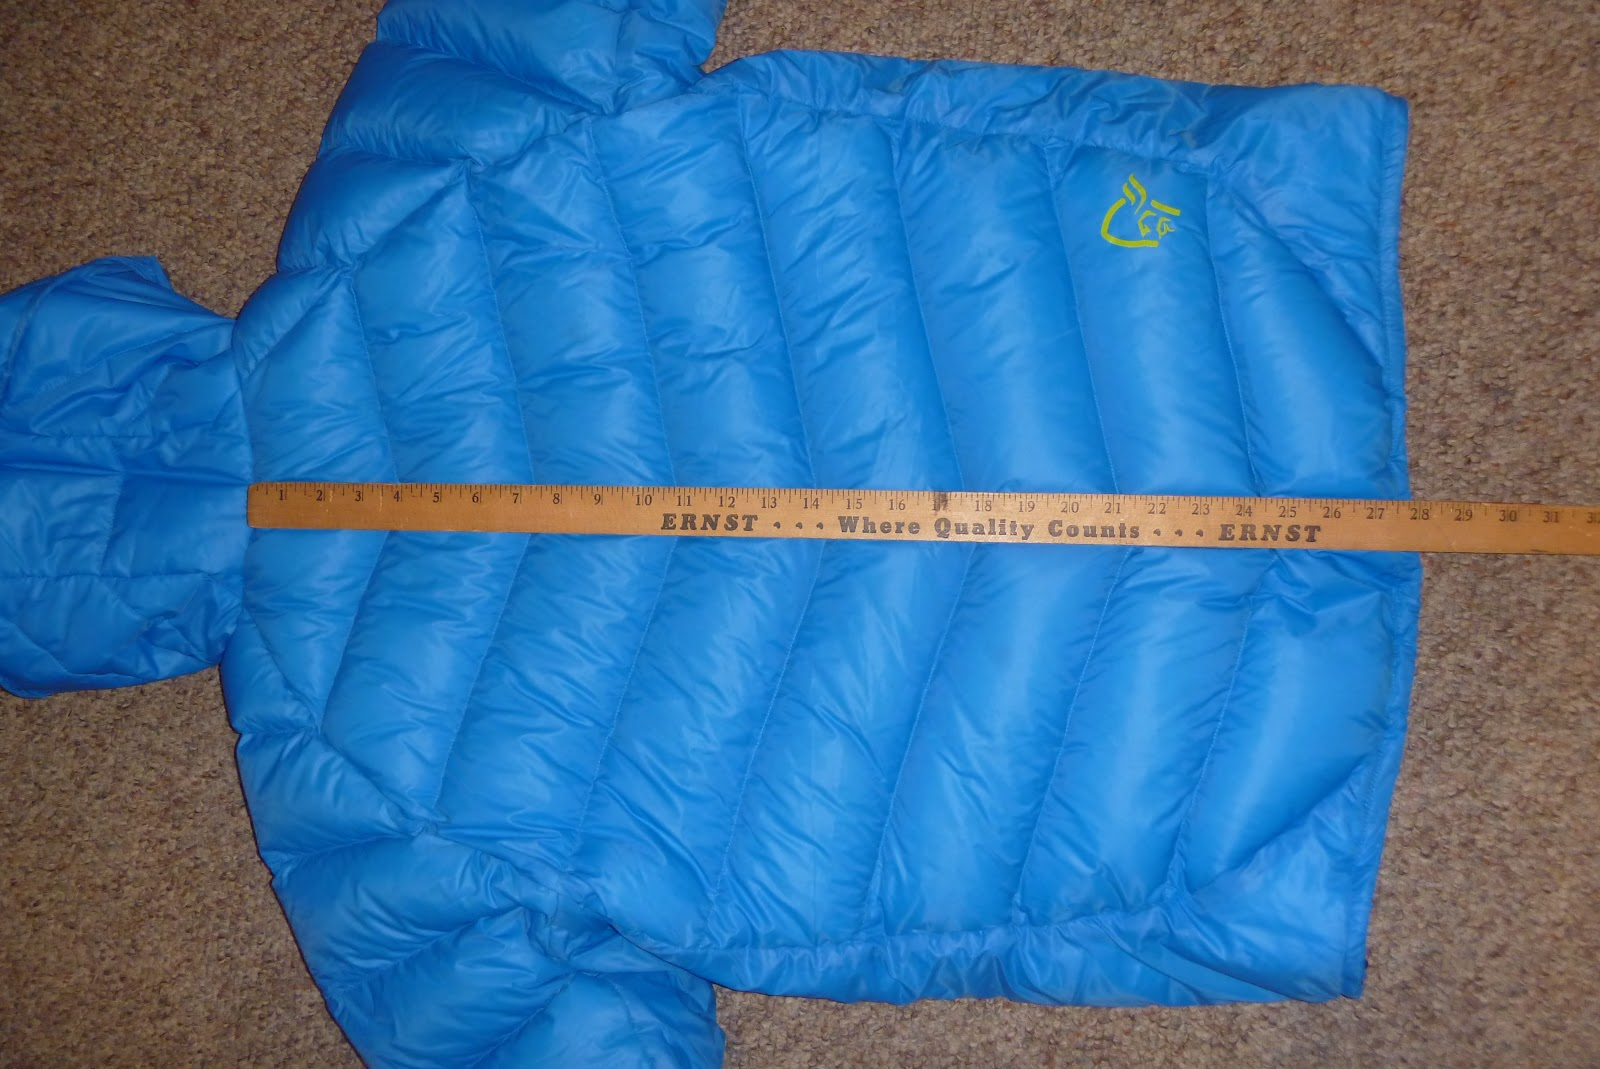 Cold Thistle: The Mont Bell Permafrost down jacket?